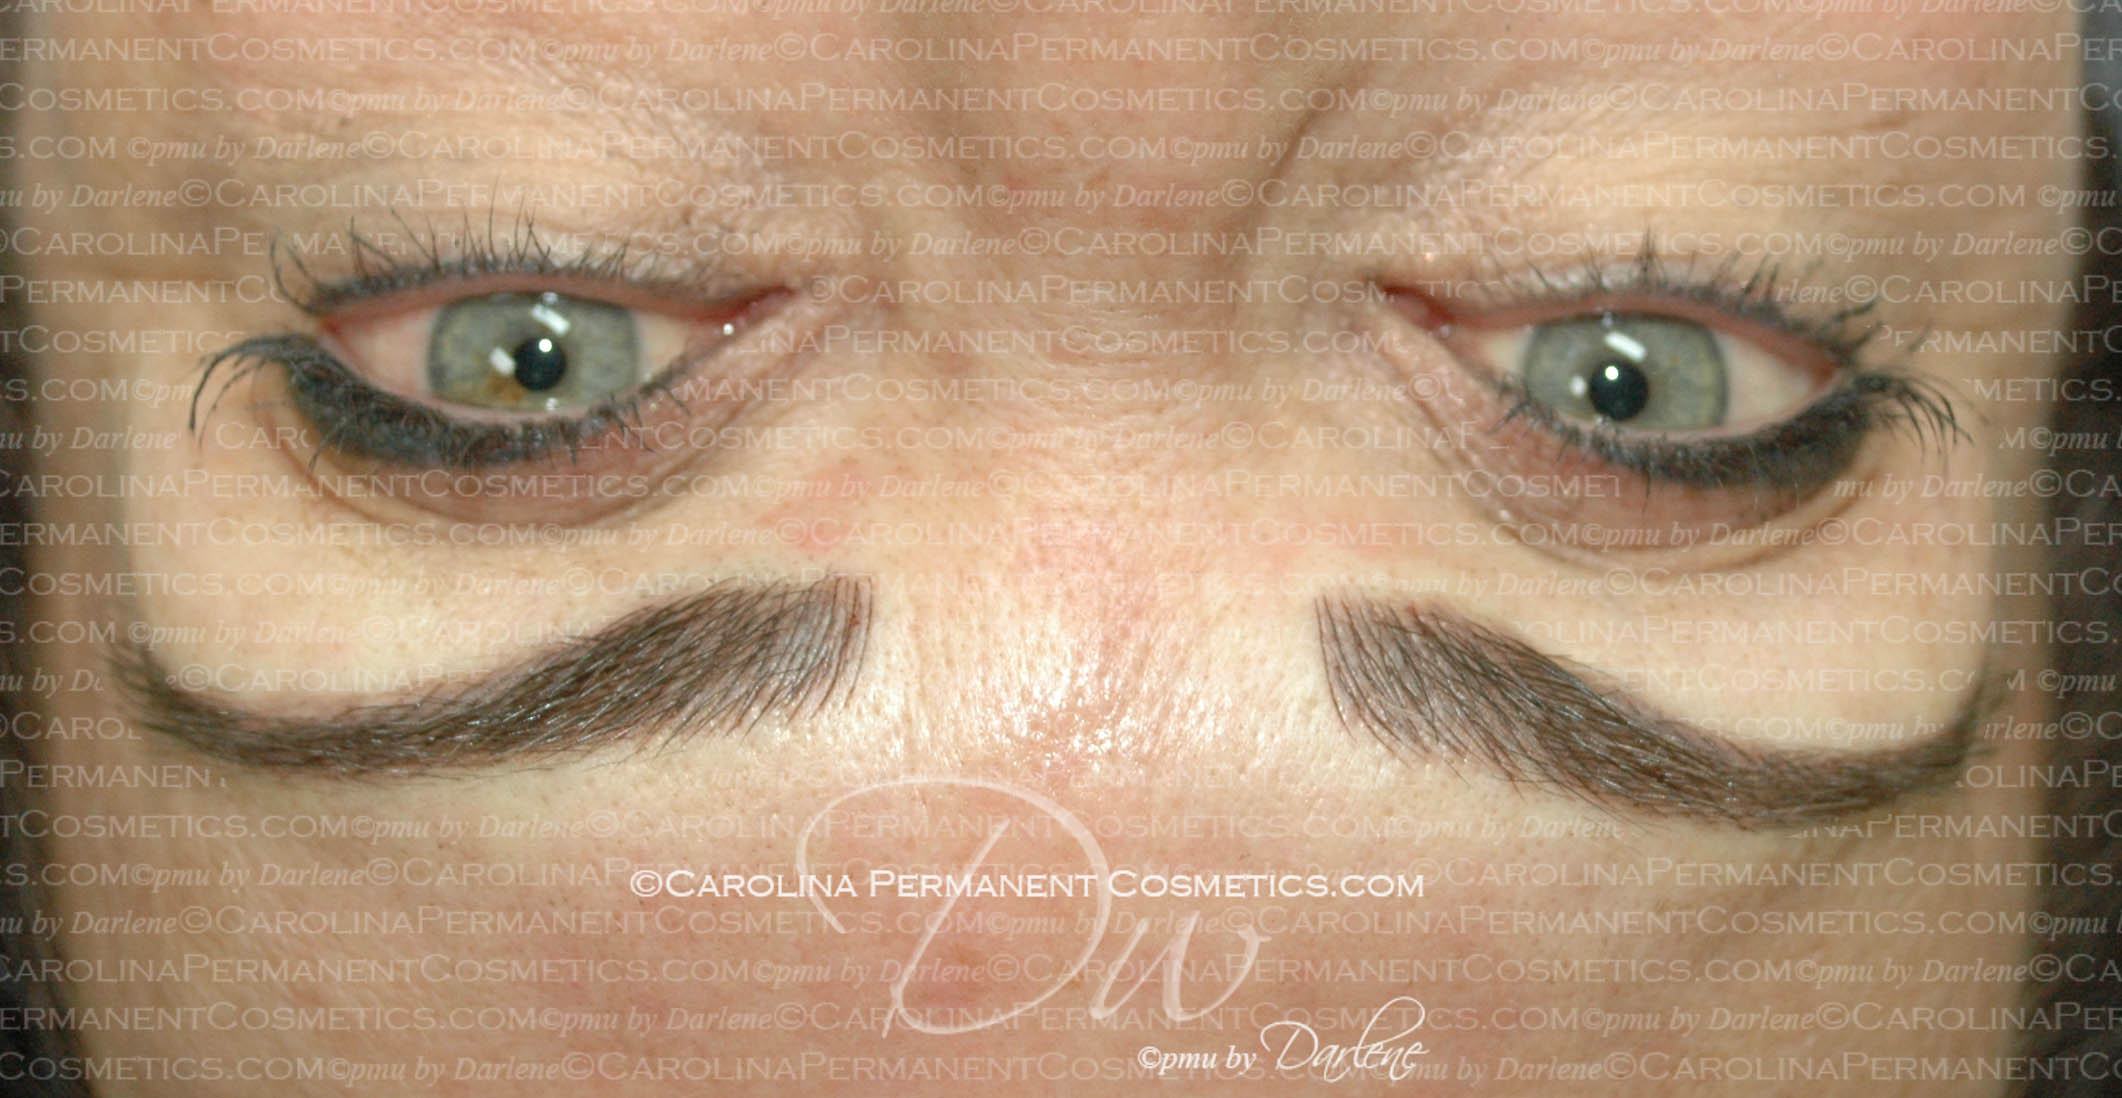 Permanent Eyebrows - Carolina Permanent Cosmetics